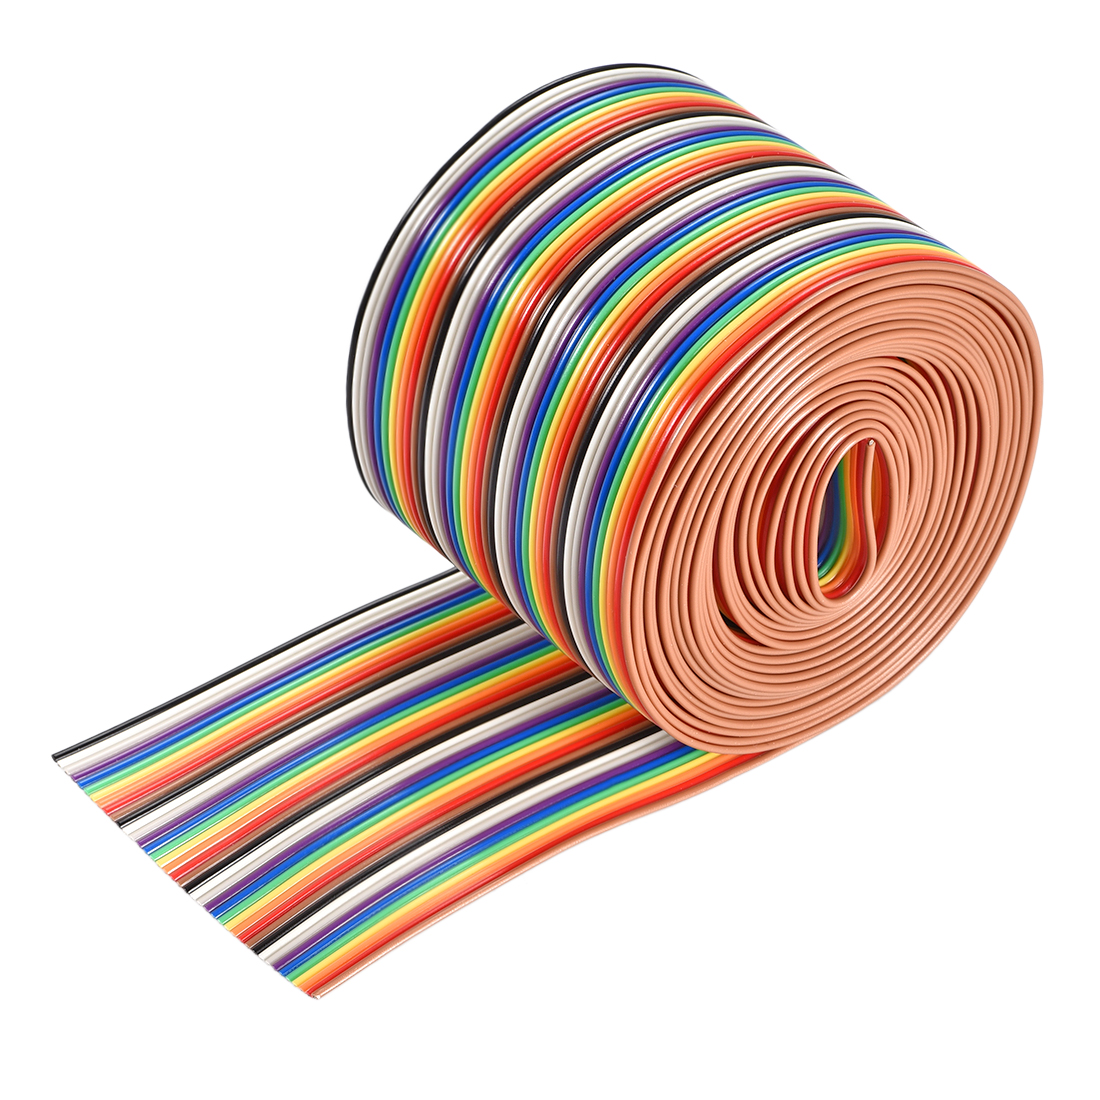 IDC Rainbow Wire Flat Ribbon Cable 40P 1.27mm Pitch 3meter/9.8ft Length